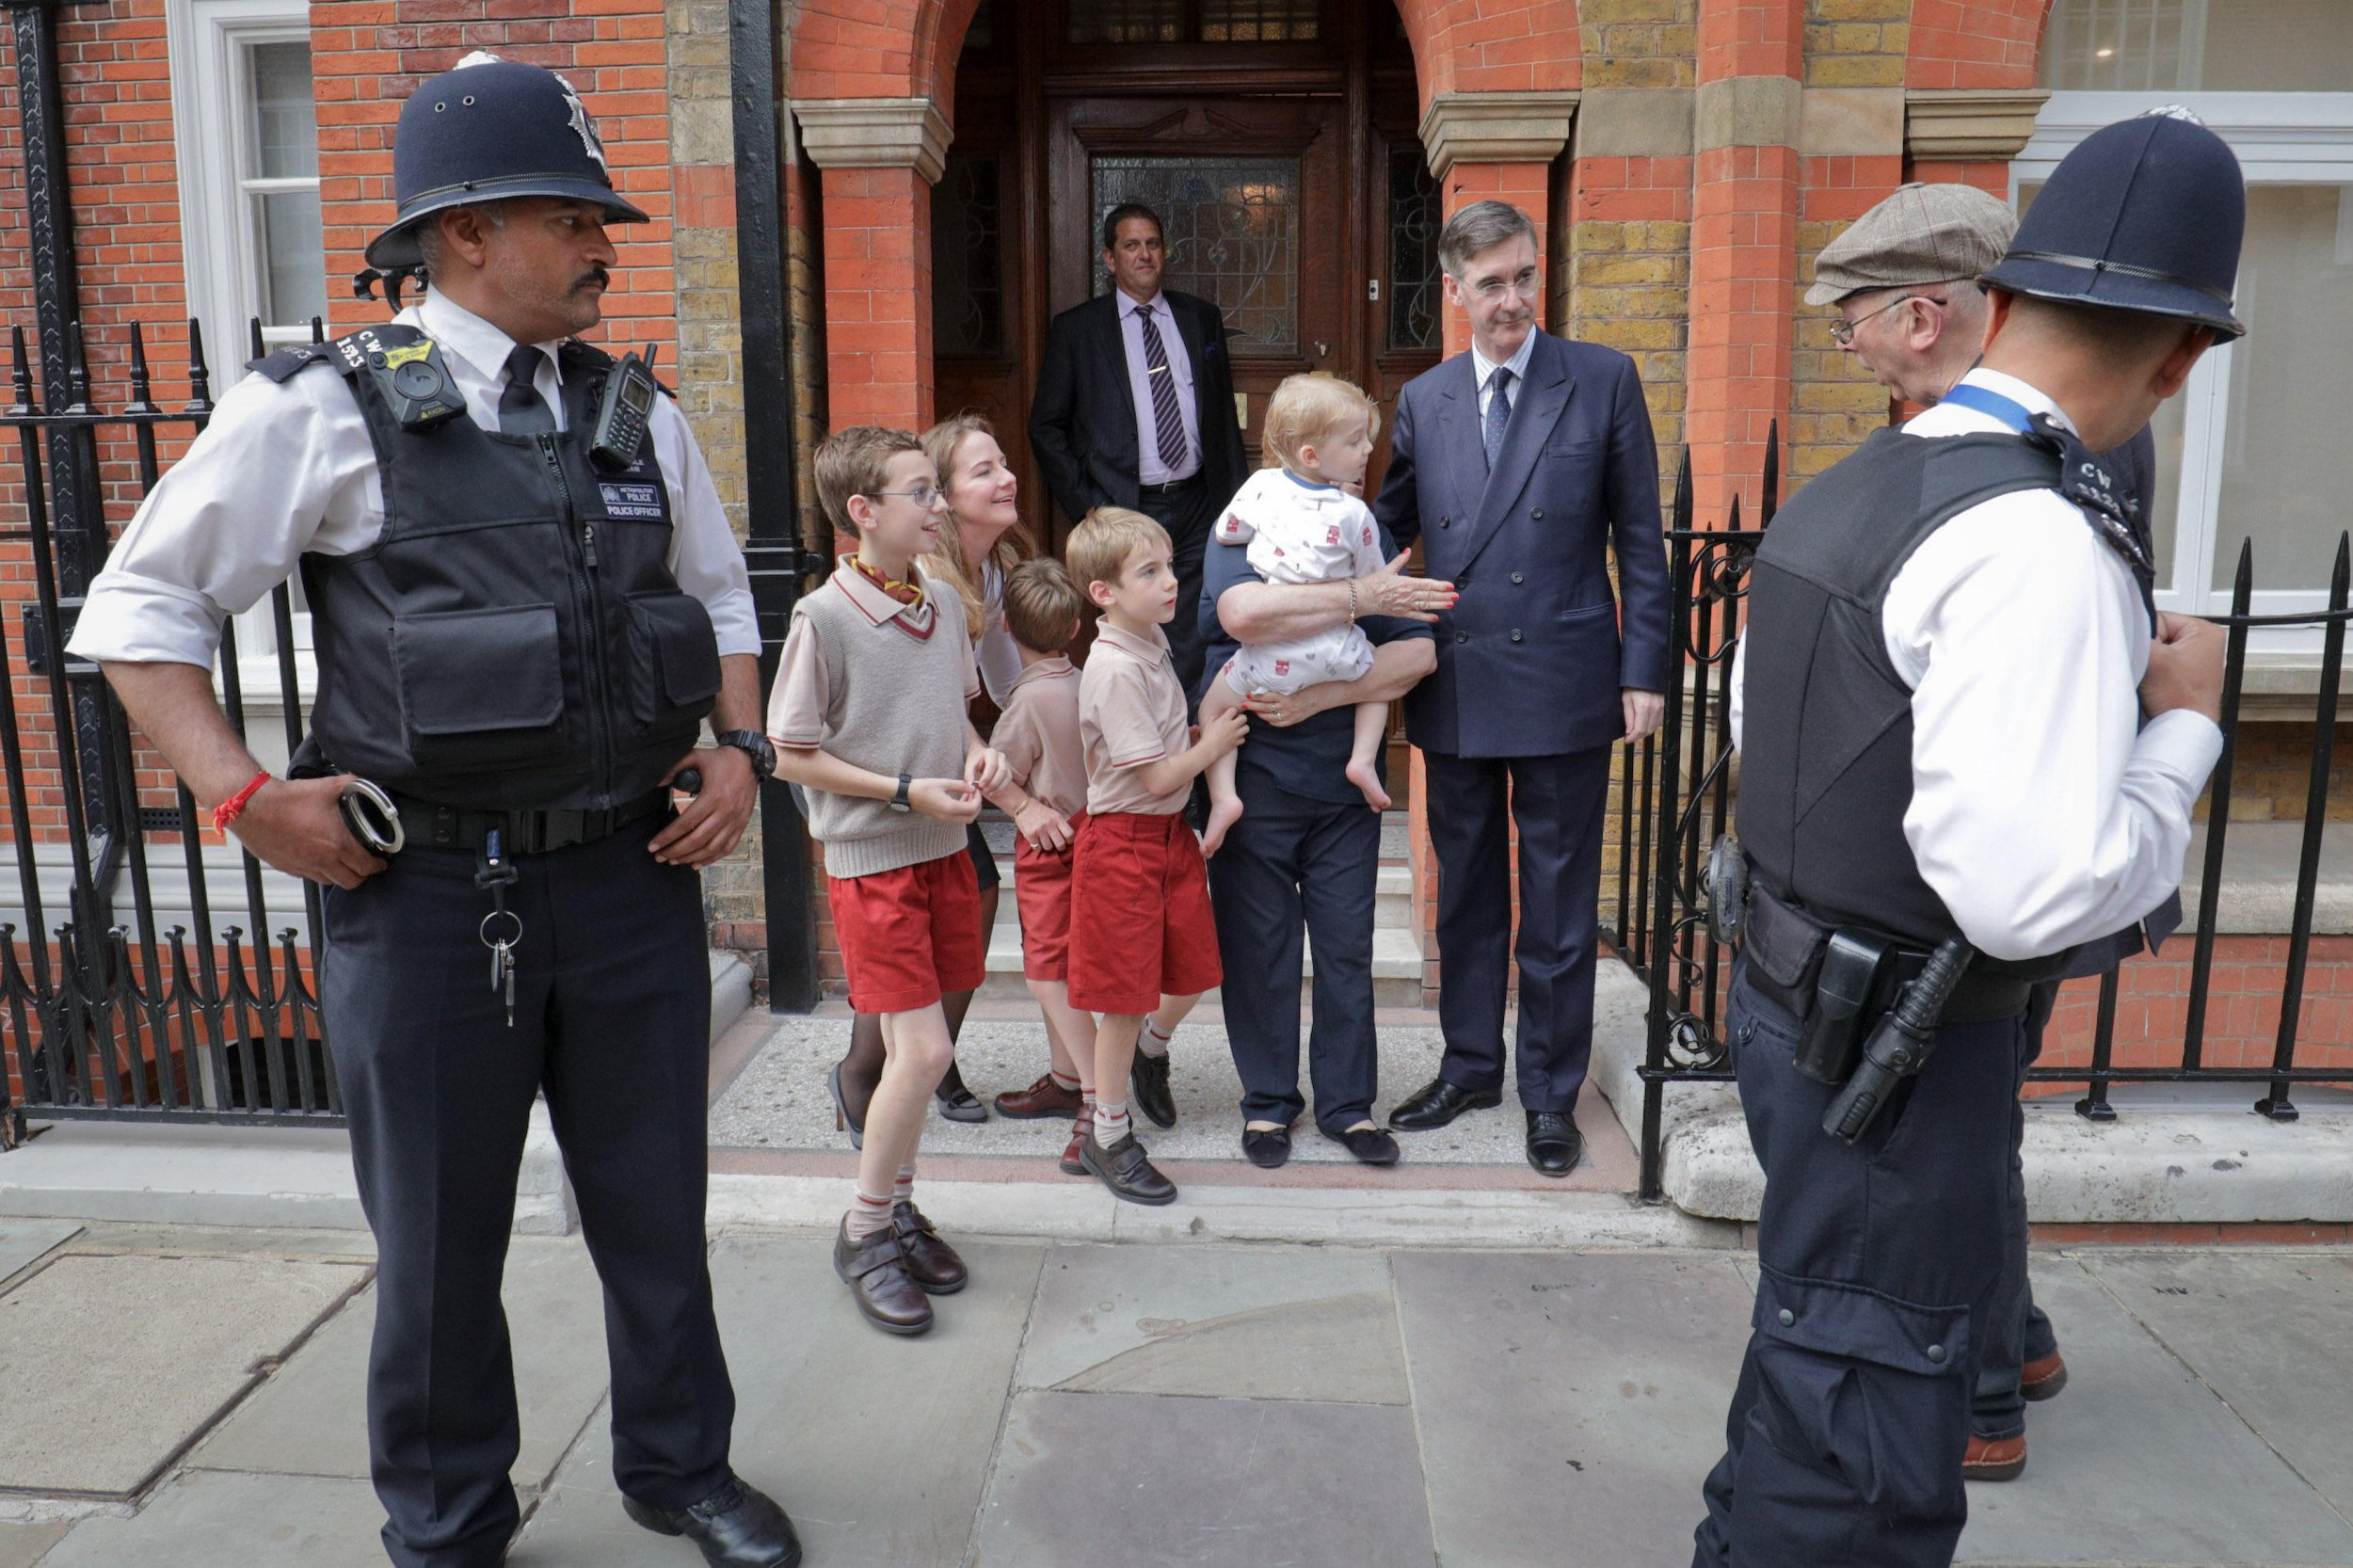 Alamy Live News. PK7FF0 London, UK. 11th September, 2018. Conservative MP Jacob Rees-Mogg and his family confront anti-capitalist protesters from Class War activist group outside his Westminster home. The protesters are claiming his long-term live-in family nanny is currently being exploited. Credit: Guy Corbishley/Alamy Live News This is an Alamy Live News image and may not be part of your current Alamy deal . If you are unsure, please contact our sales team to check.